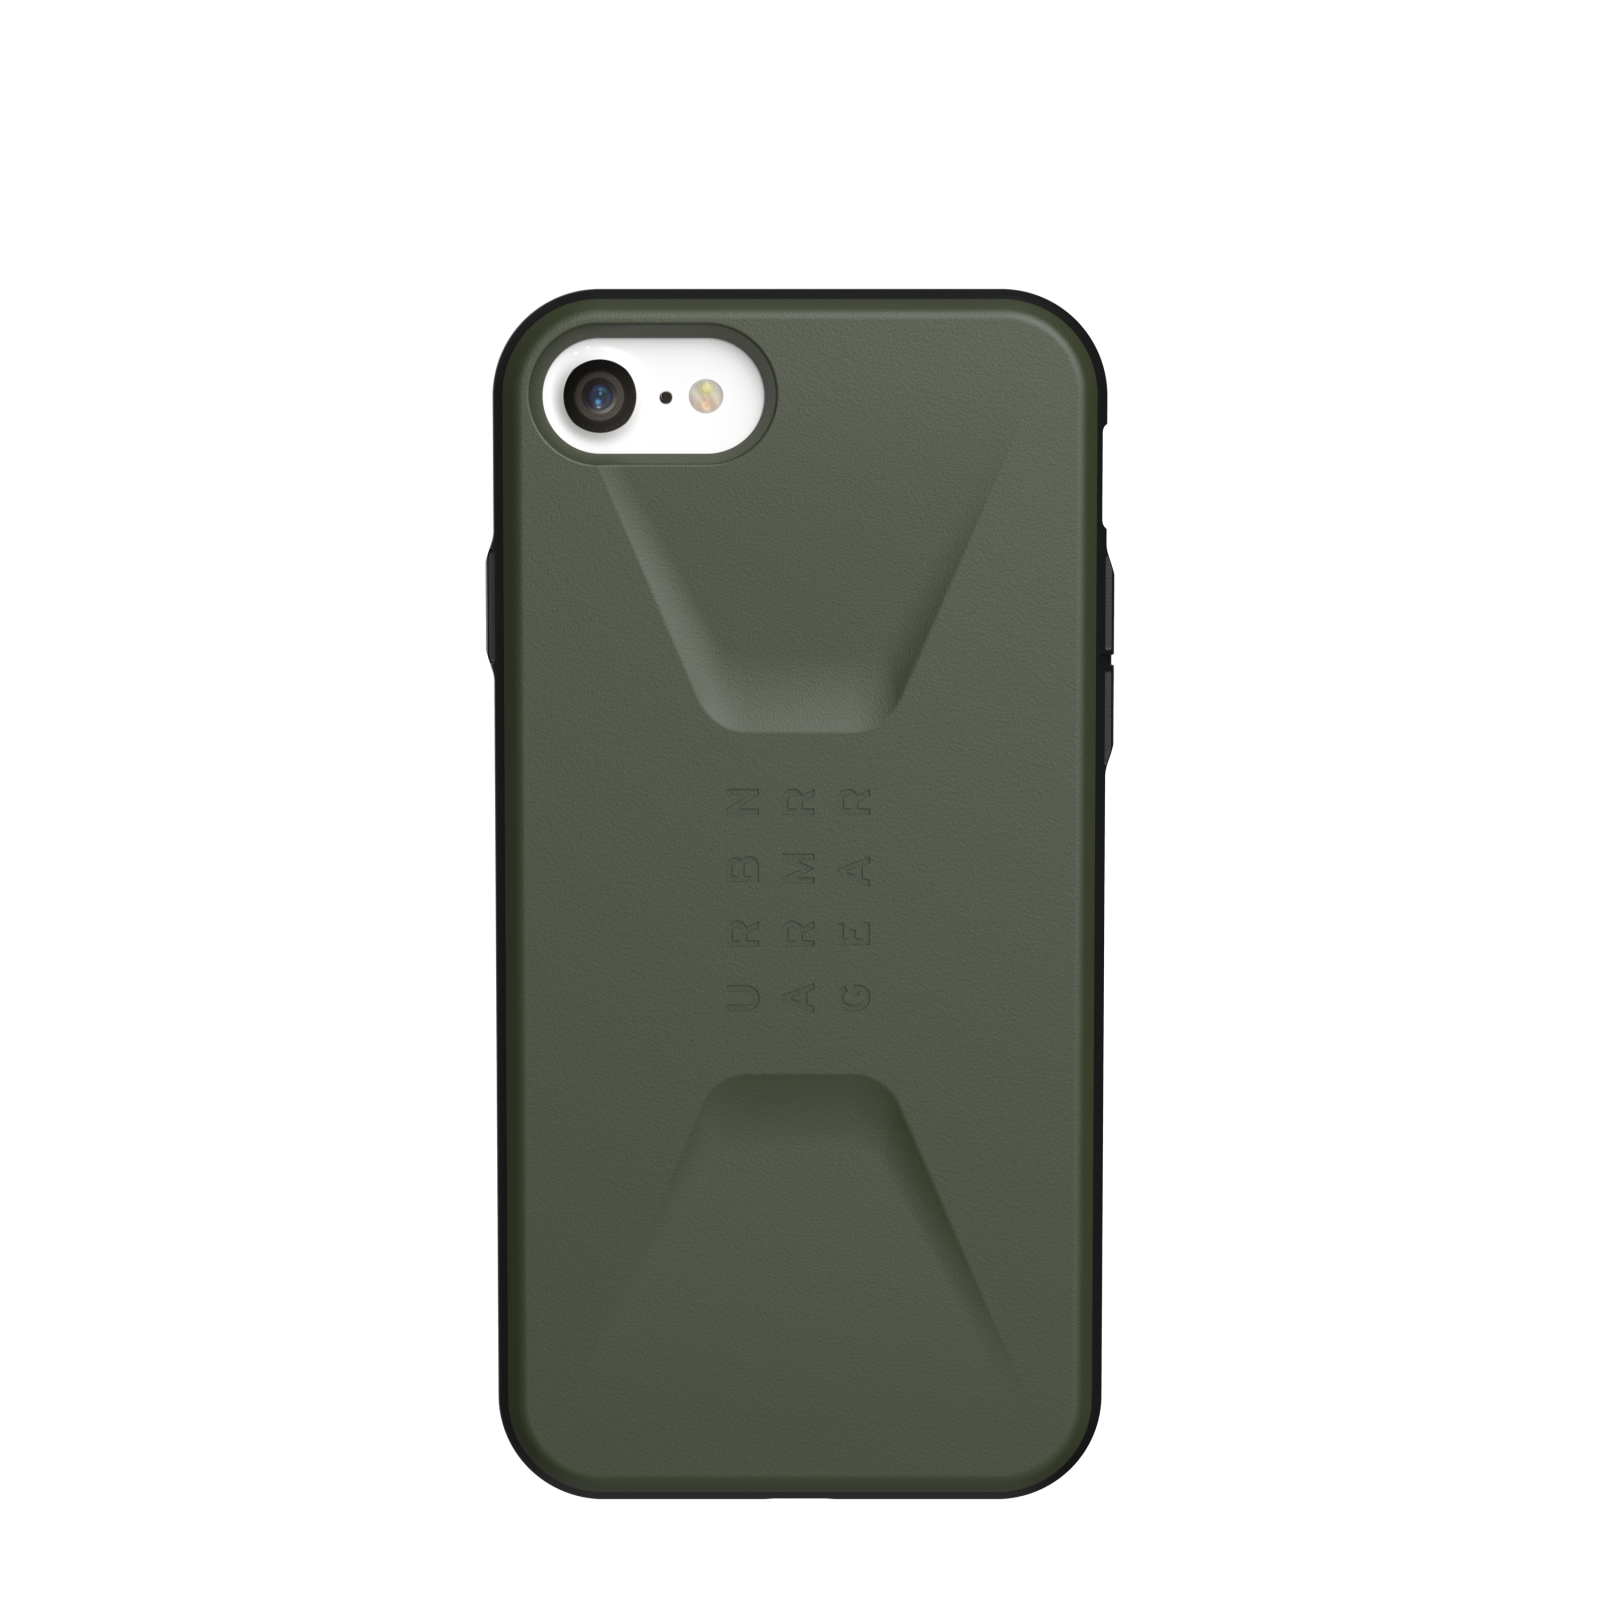 ỐP LƯNG CIVILIAN CHO IPHONE SE 2020 [4.7-INCH] - Olive Drab